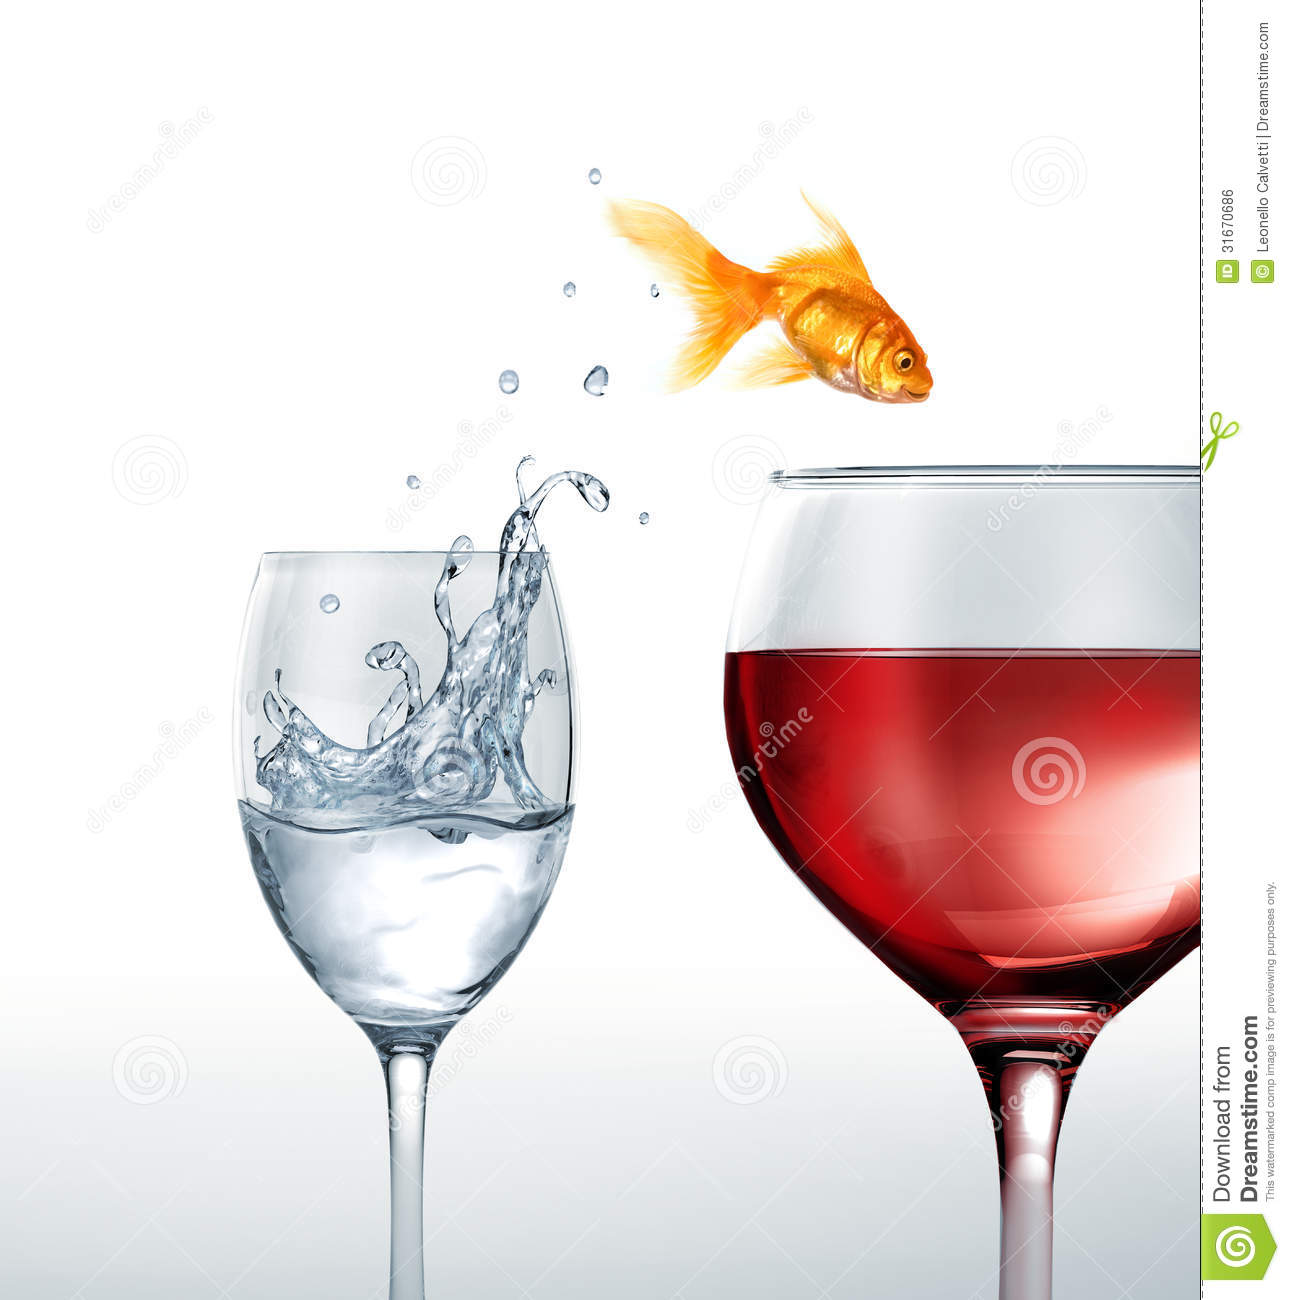 Gold fish smiling jumping from a glass of water to a for Red wine with fish